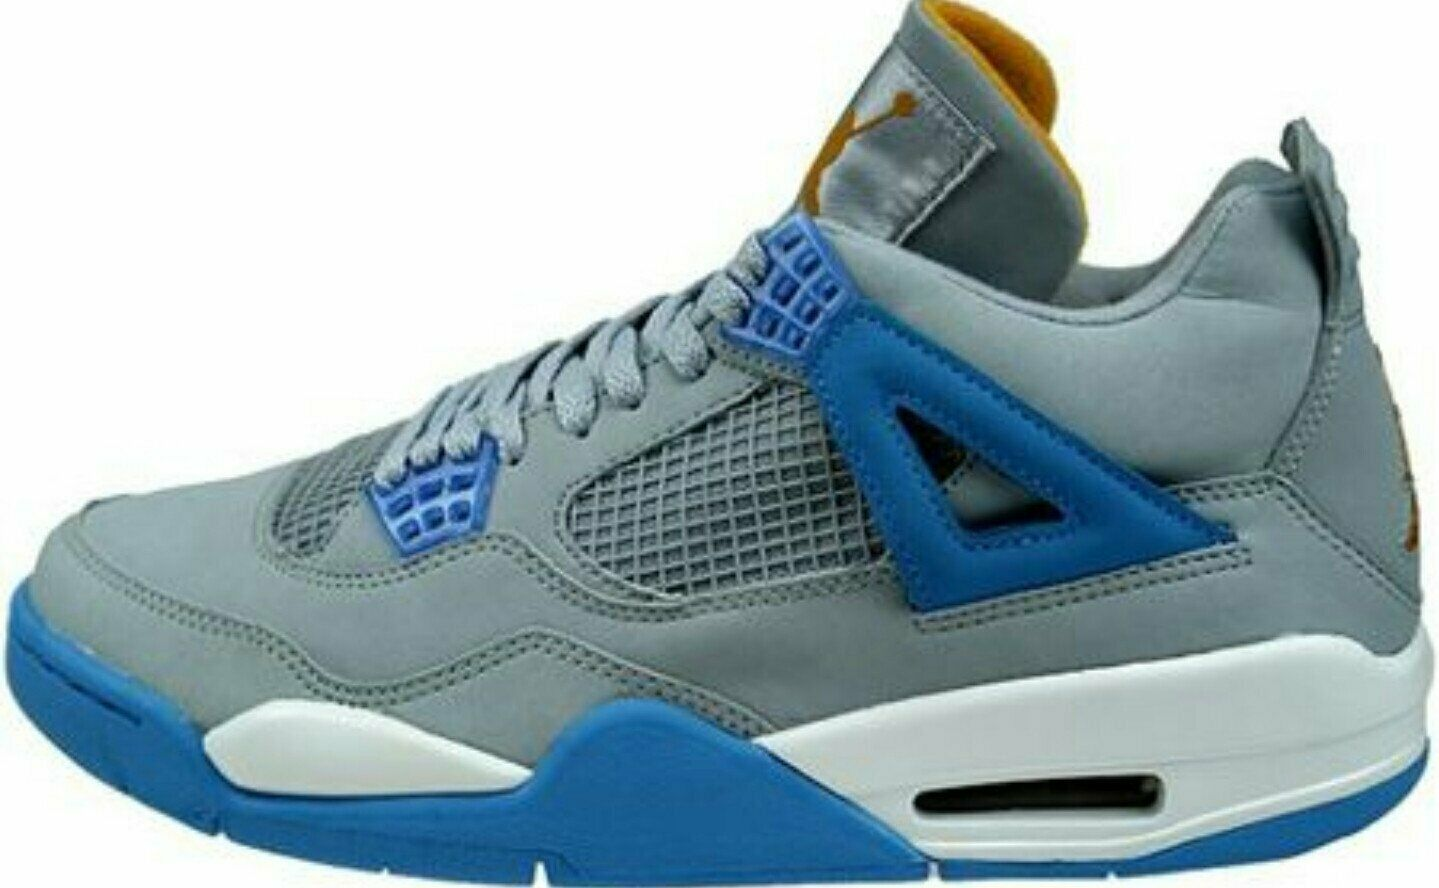 AIR JORDAN RETRO 4 blueE MIST LAST ONE SZ 13